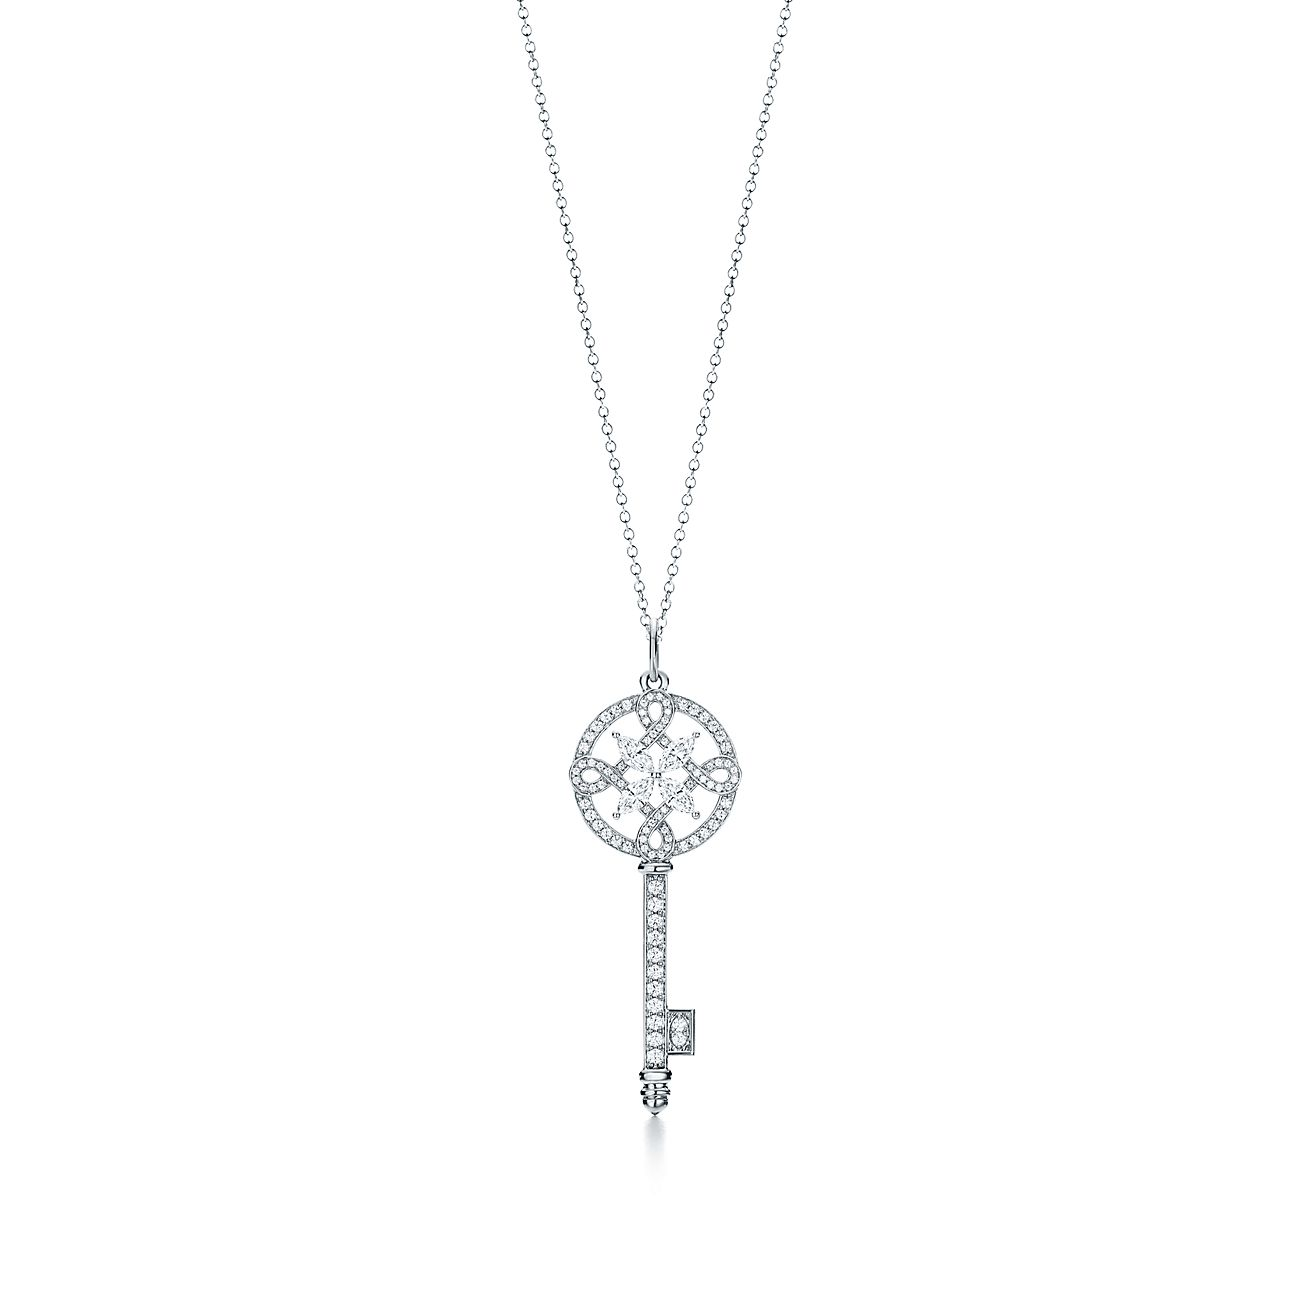 Silver Rounded Key Necklace